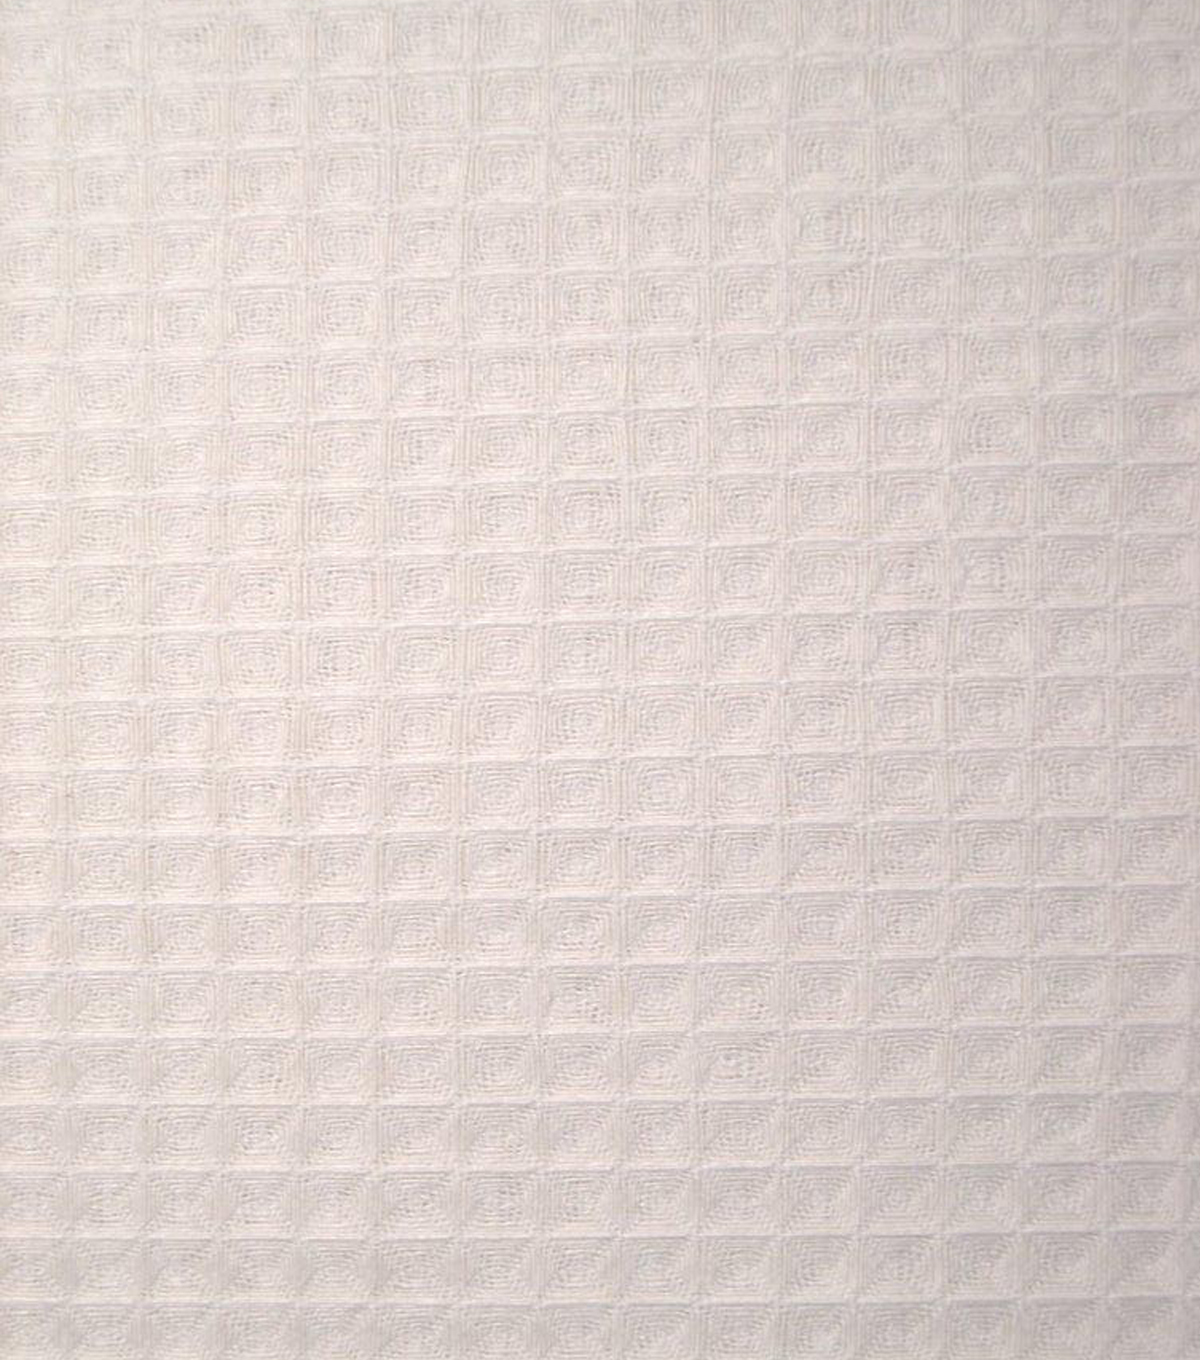 Cotton Utility Fabric-Waffle Weave | JOANN for Soft White Cotton Texture  45hul